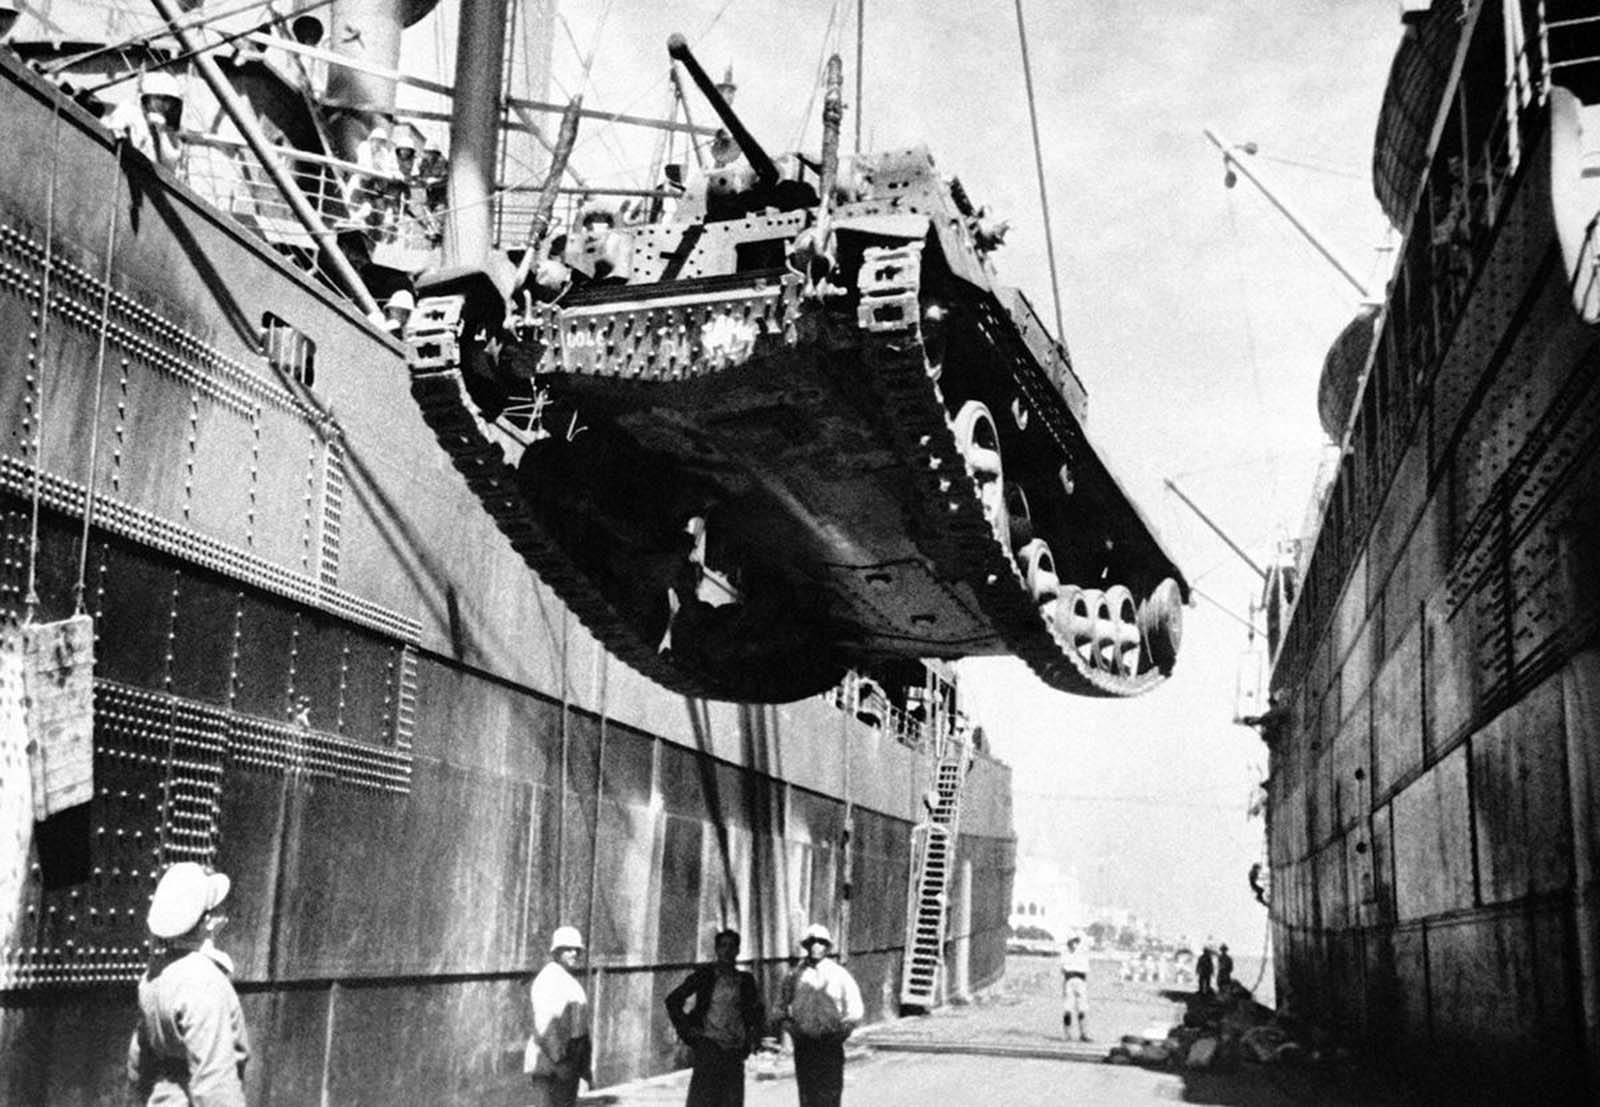 A British Cruiser tank is unloaded at a port in Egypt, on November 17, 1940. It is one of a large number which had just been shipped there by British forces.